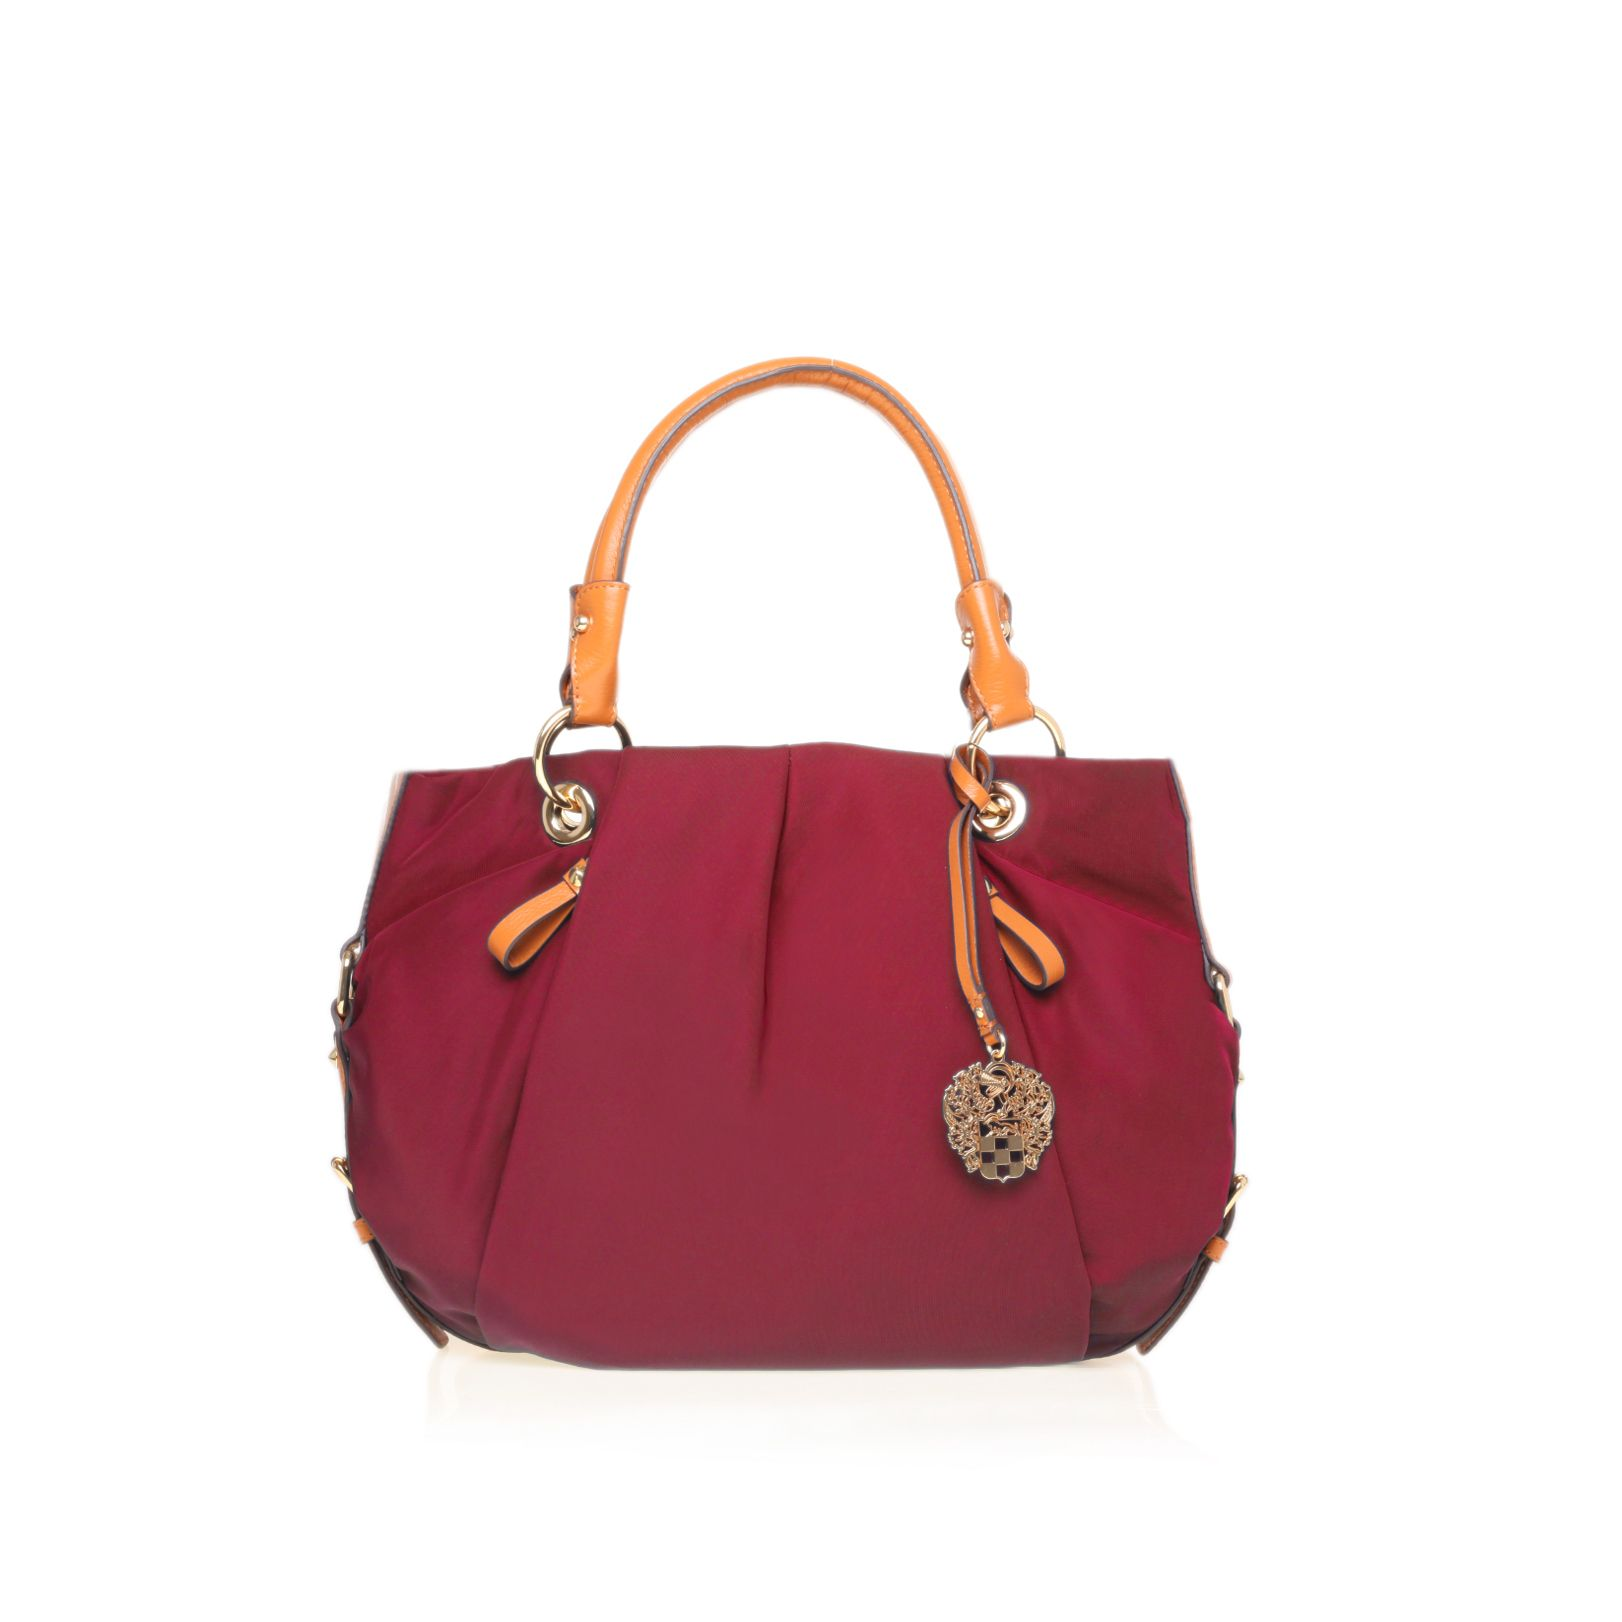 Cris satchel bag